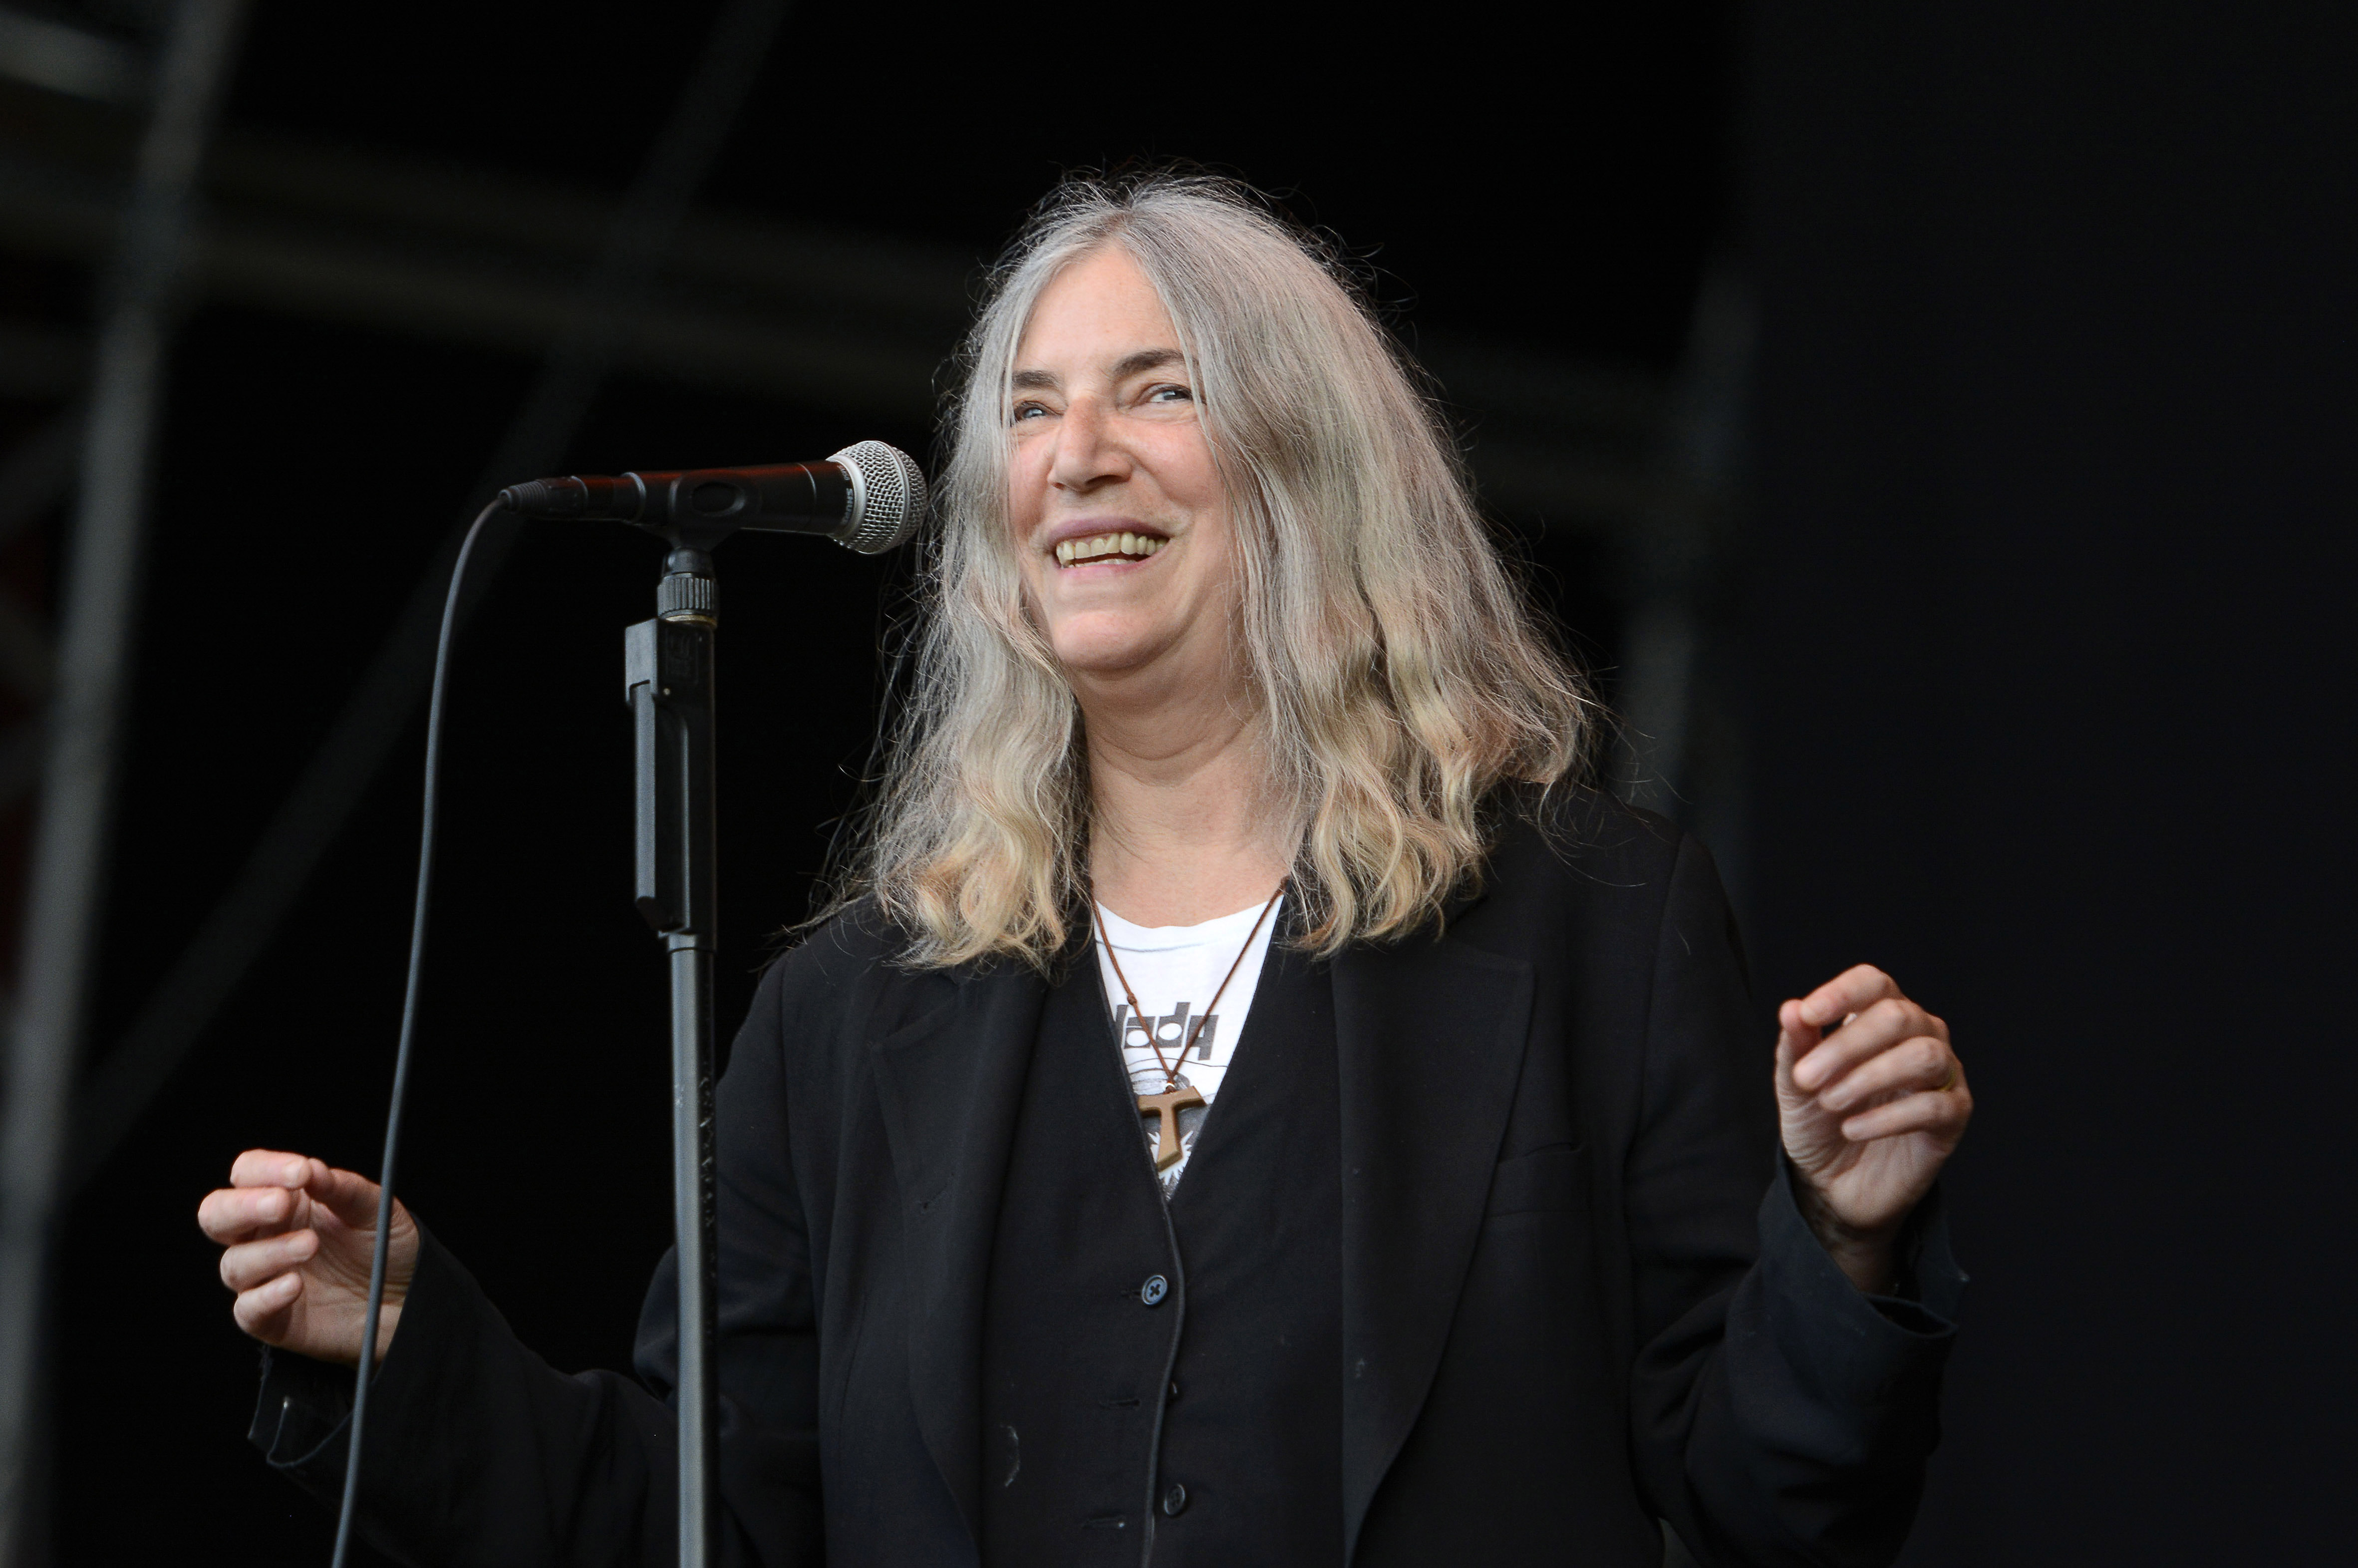 Patti Smith performs on 'A Summer's Tale Open Air Festival 2015' at Lüneburger Heide on August 7, 2015 in Luhmühlen.